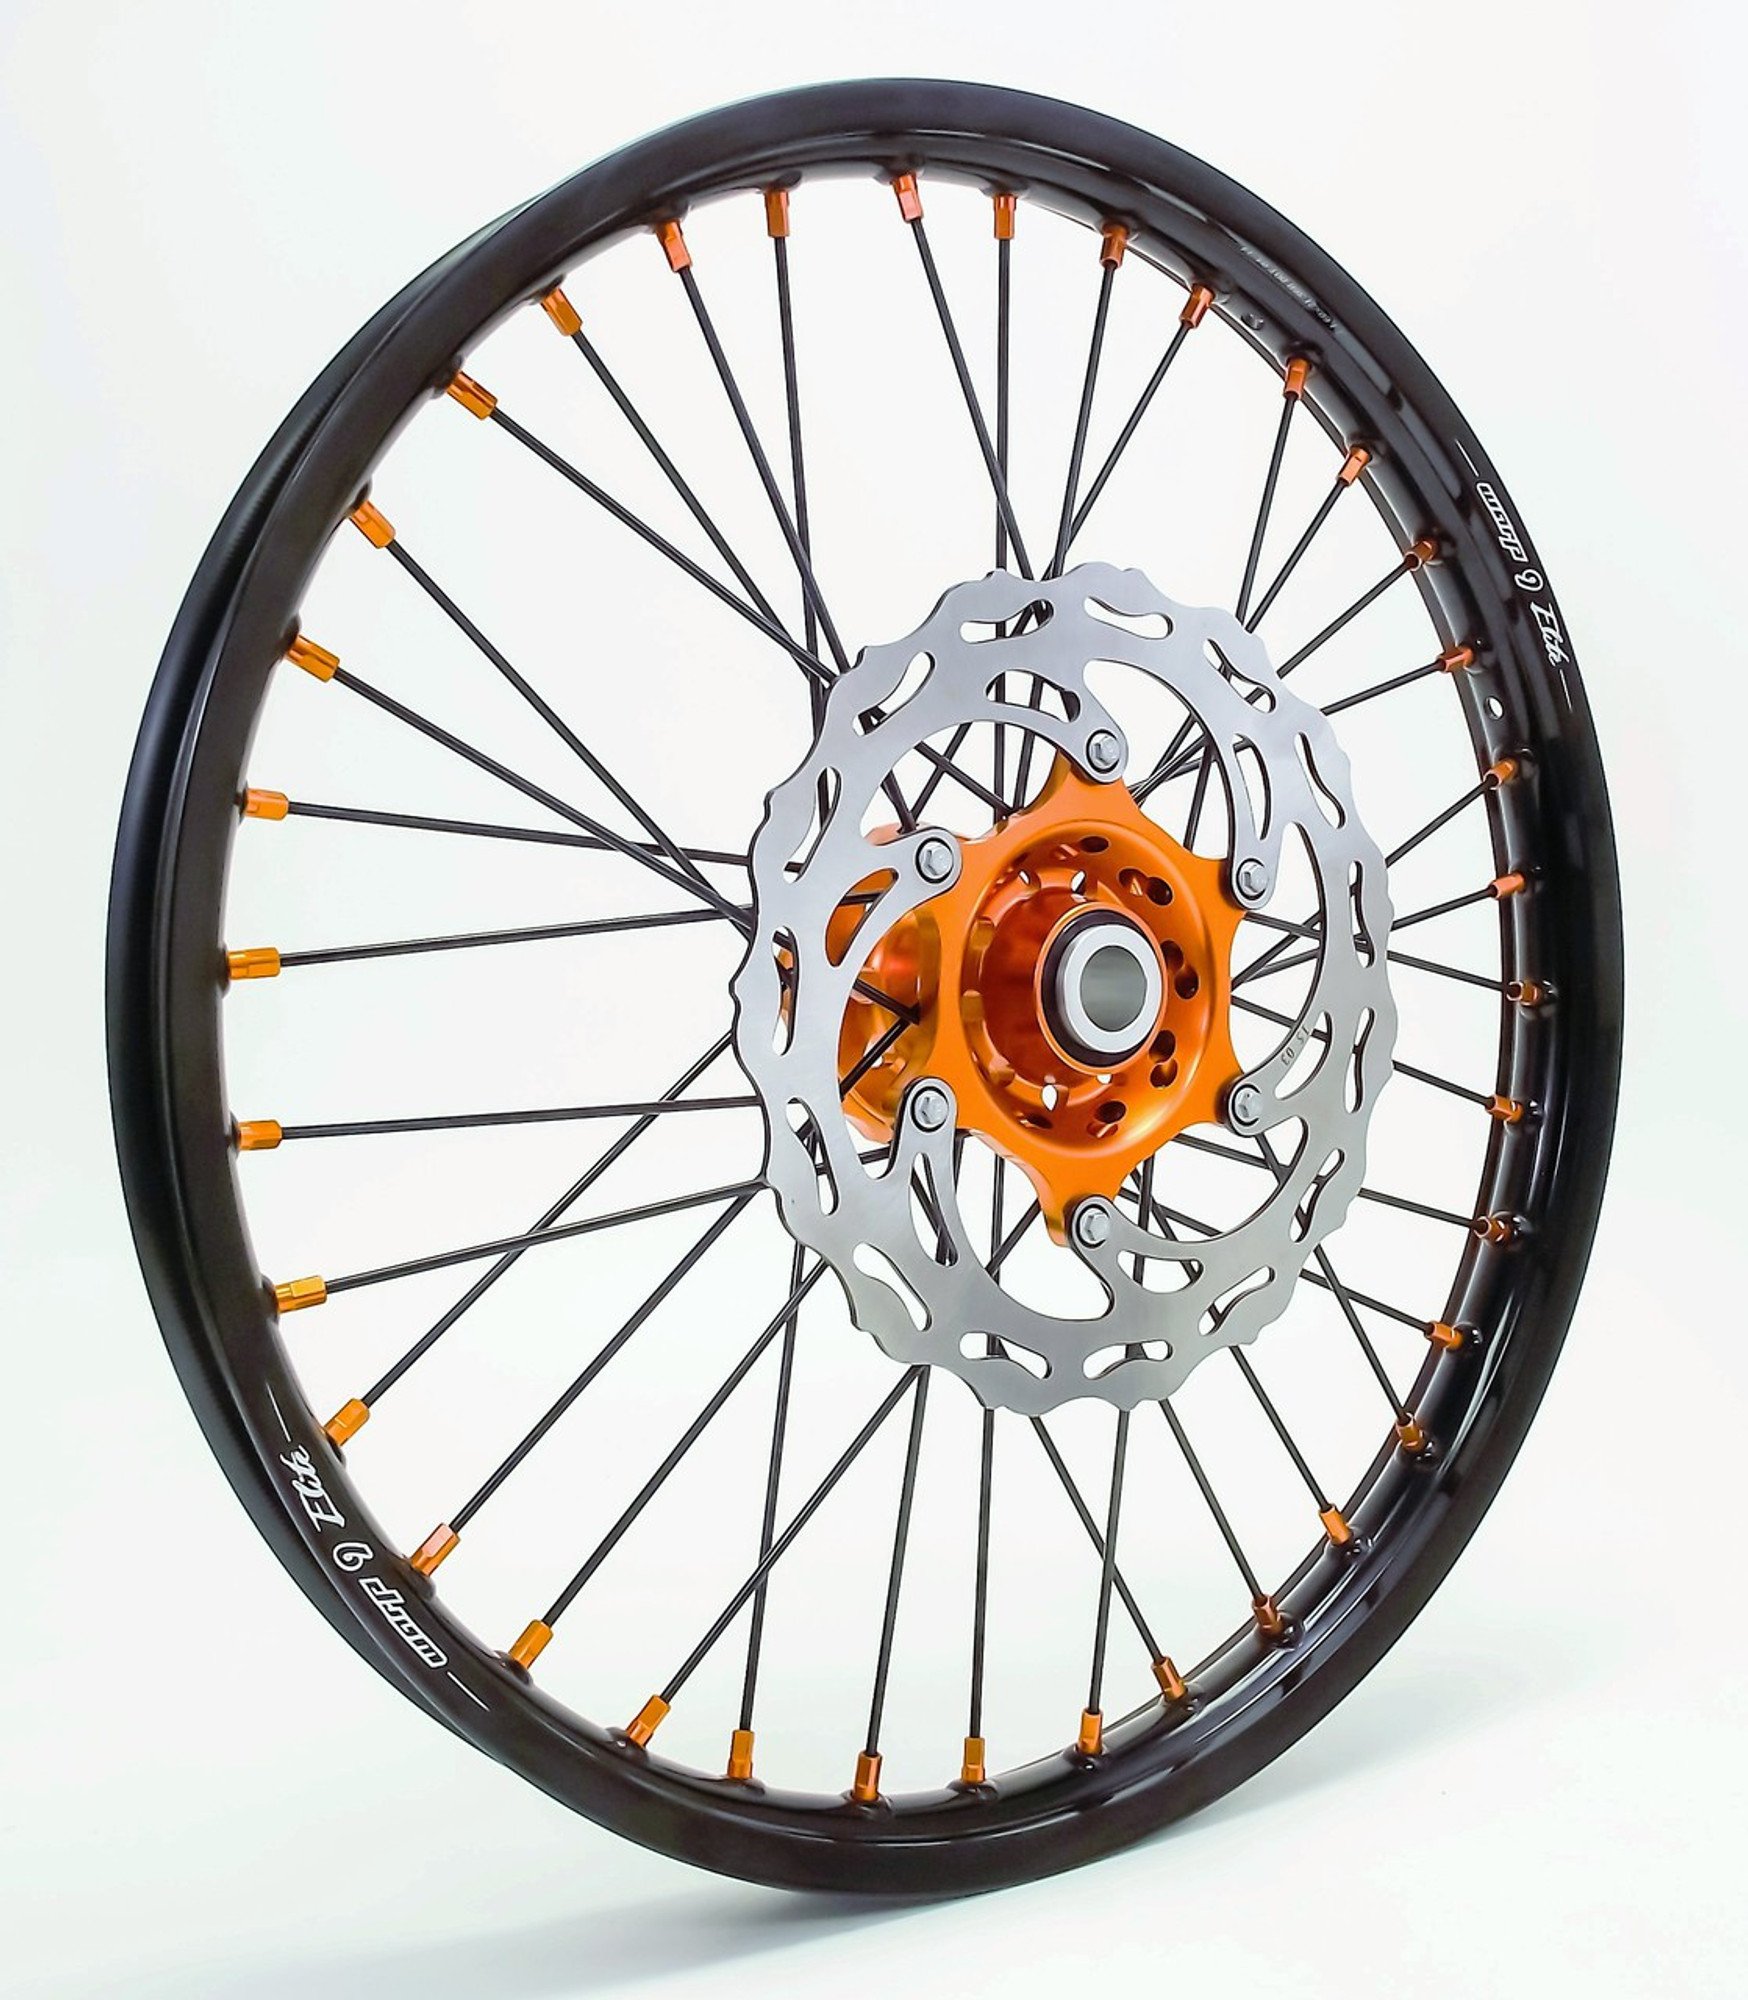 warp 9 ktm 690 enduro front wheel for sale cycle house KTM 450 Enduro warp 9 ktm 690 enduro front wheel